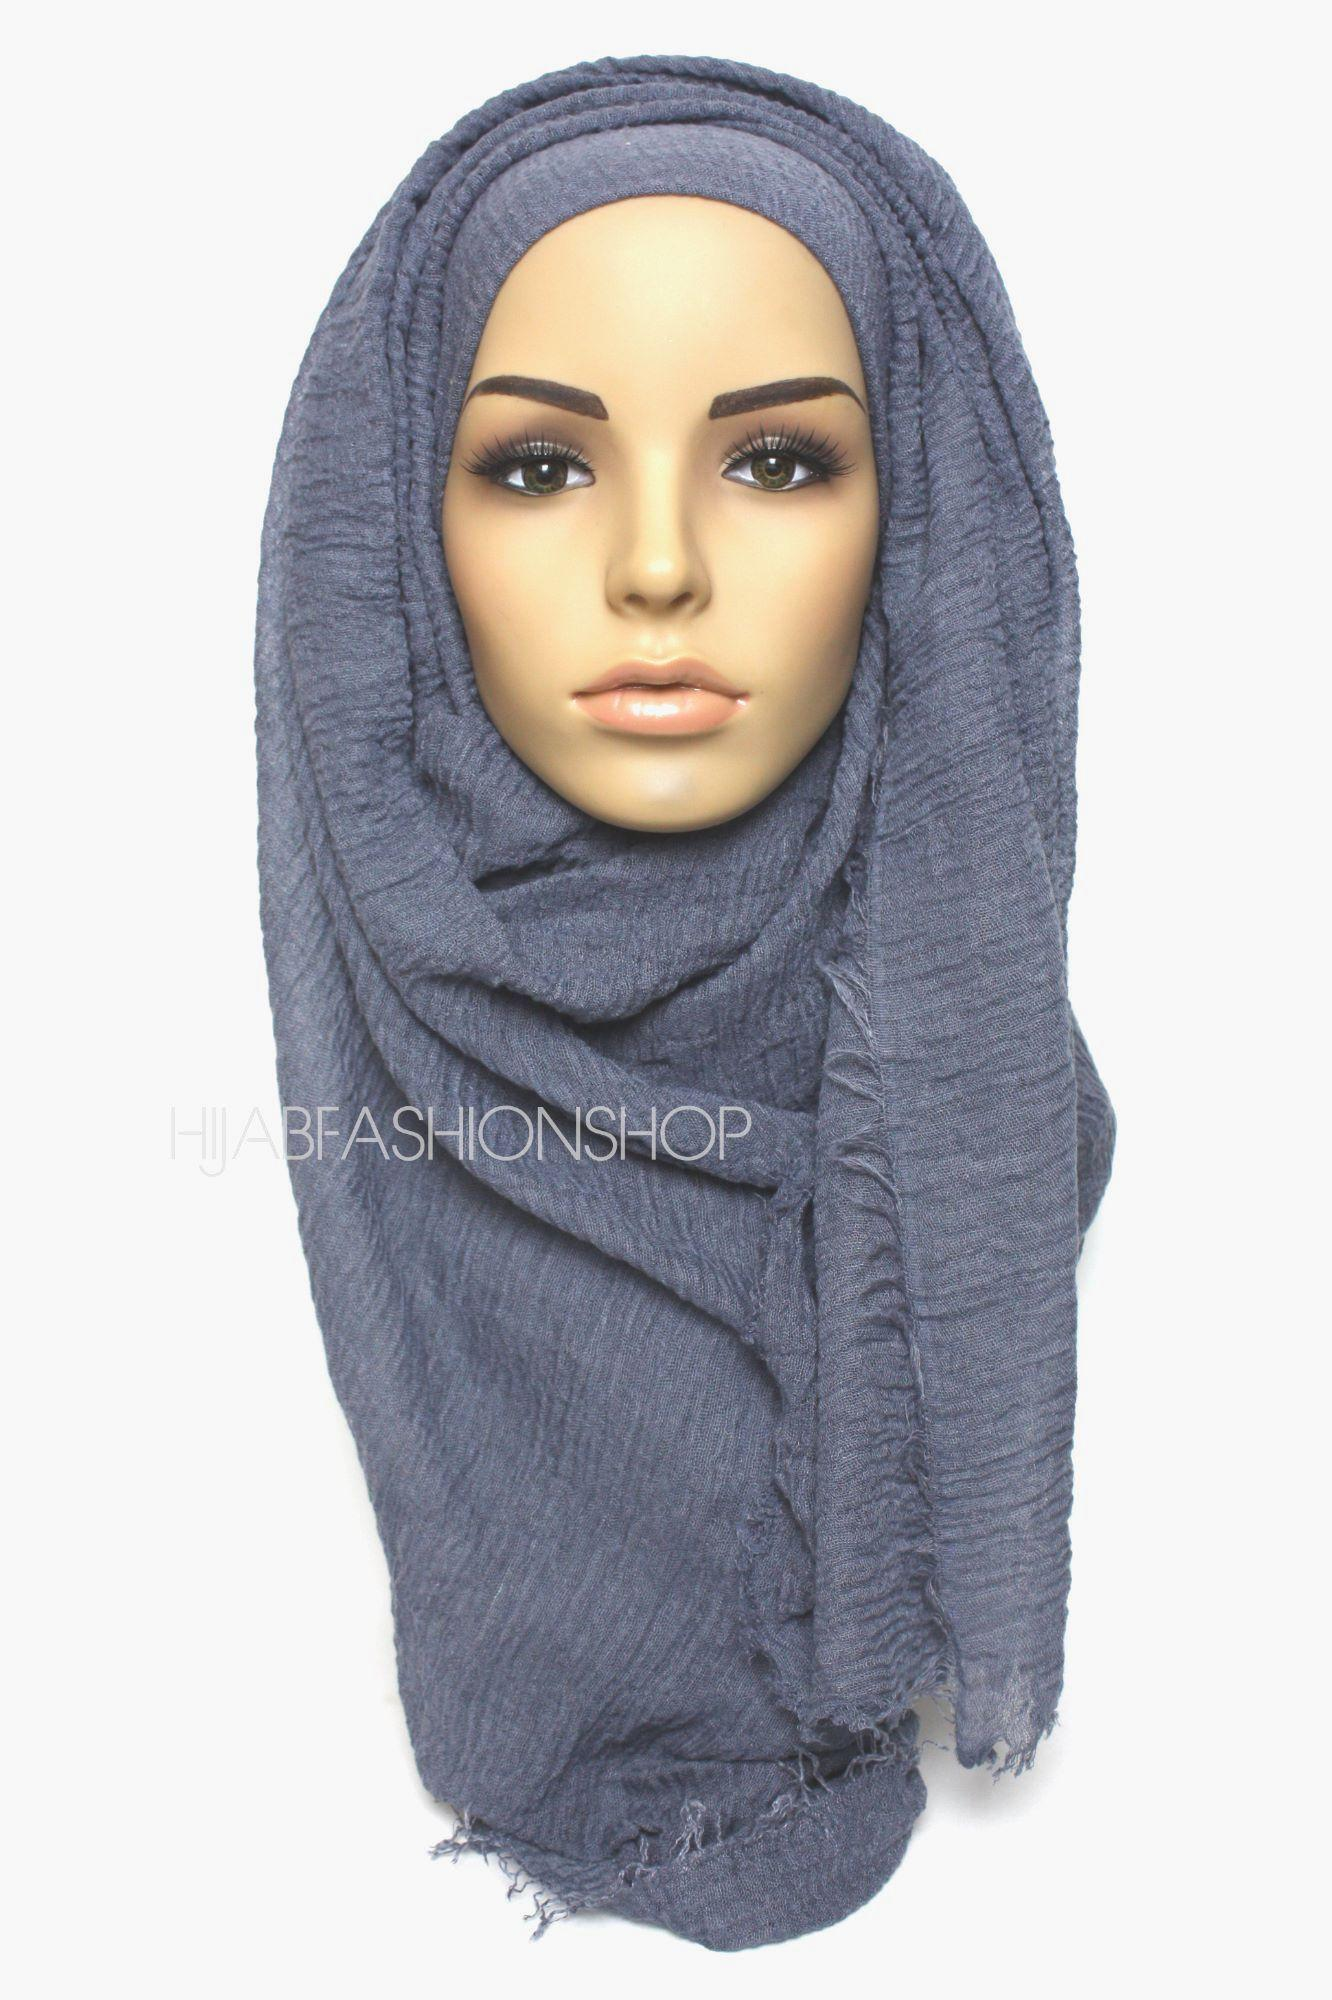 denim crimp crinke hijab